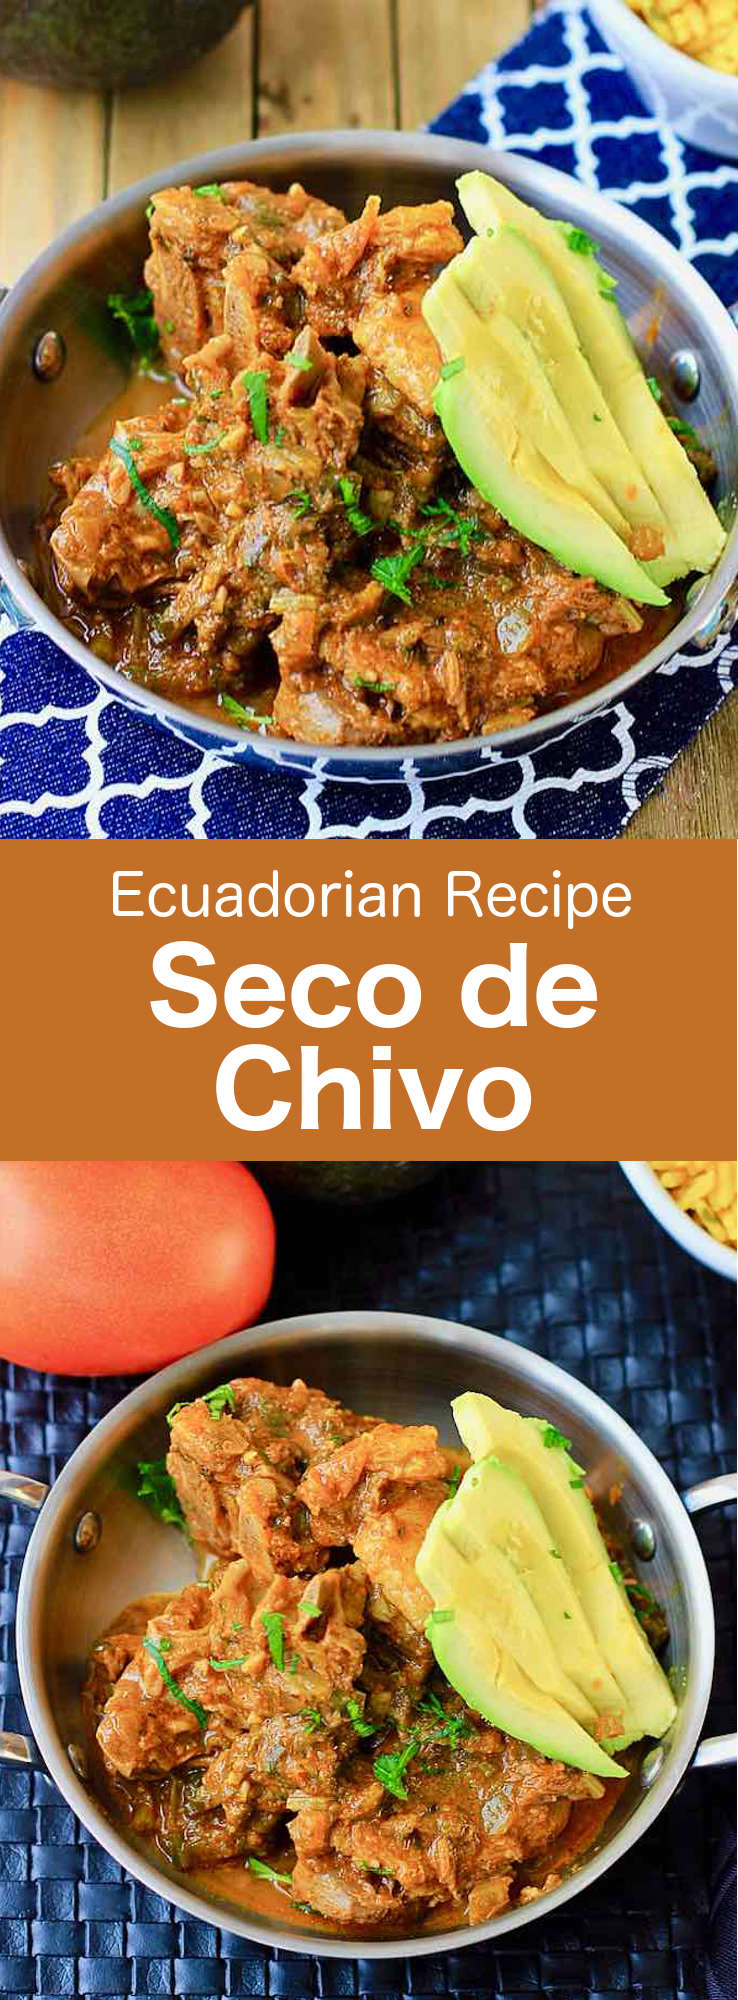 Seco de chivo is a traditional Ecuadorian stew made with goat meat cooked in garlic, cumin, achiote, bell pepper, hot pepper, onion, cilantro and tomato sauce, chicha, naranjilla juice, panela and spices. #Ecuador #EcuadorFood #EcuadorianCuisine #EcuadorianRecipe #WorldCuisine #196flavors